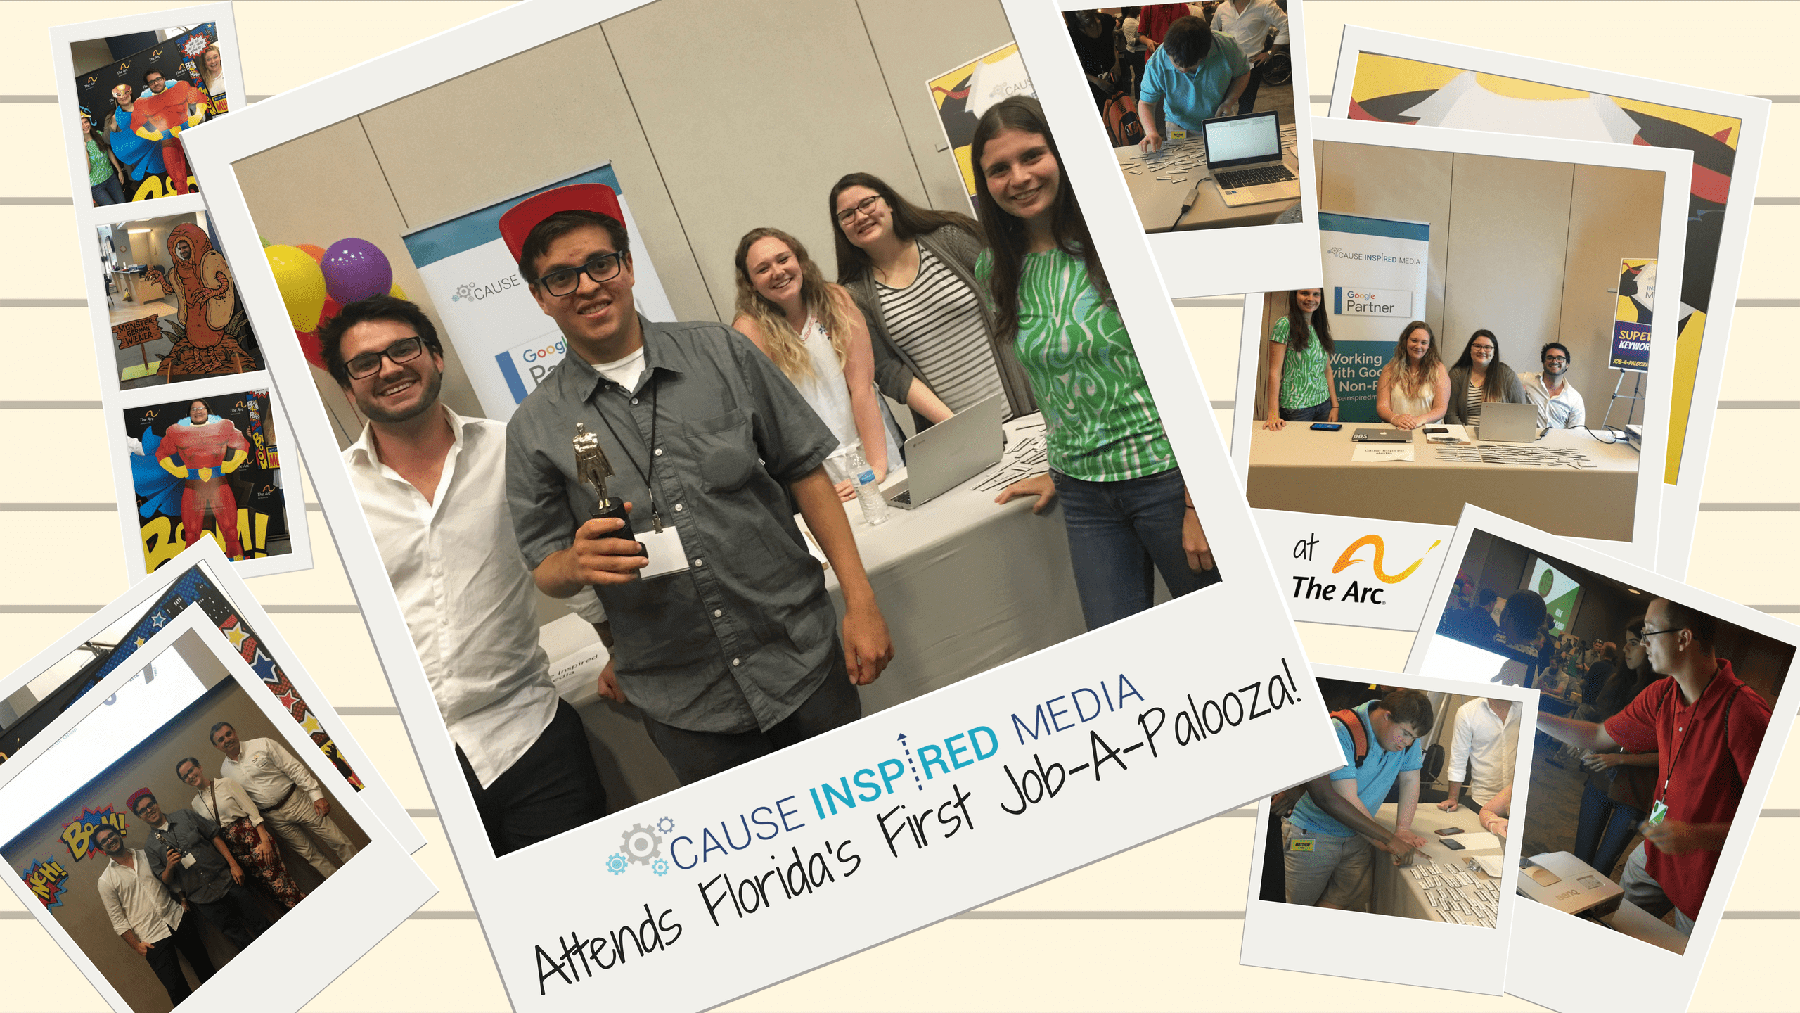 Cause Inspired Media Attends Florida's First Job-A-Palooza!